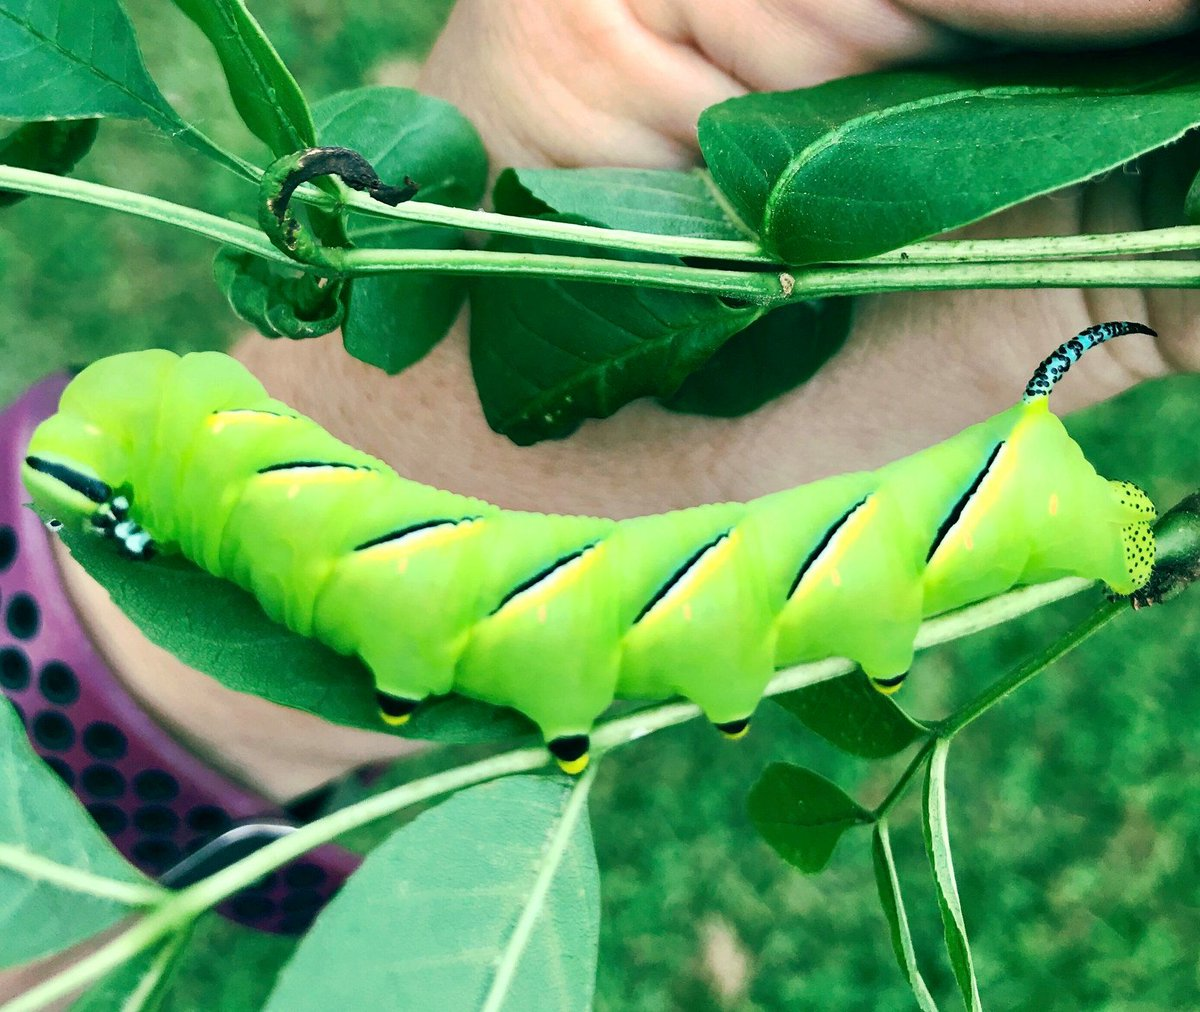 This laural sphinx #caterpillar was found happily chomping on leaves in an ash tree. It will soon burrow into the soil to pupate over the winter. Its brilliant green color & black & blue horn will will be gone when it emerges as a large brown moth next year. 🐛 #TimeToExplore